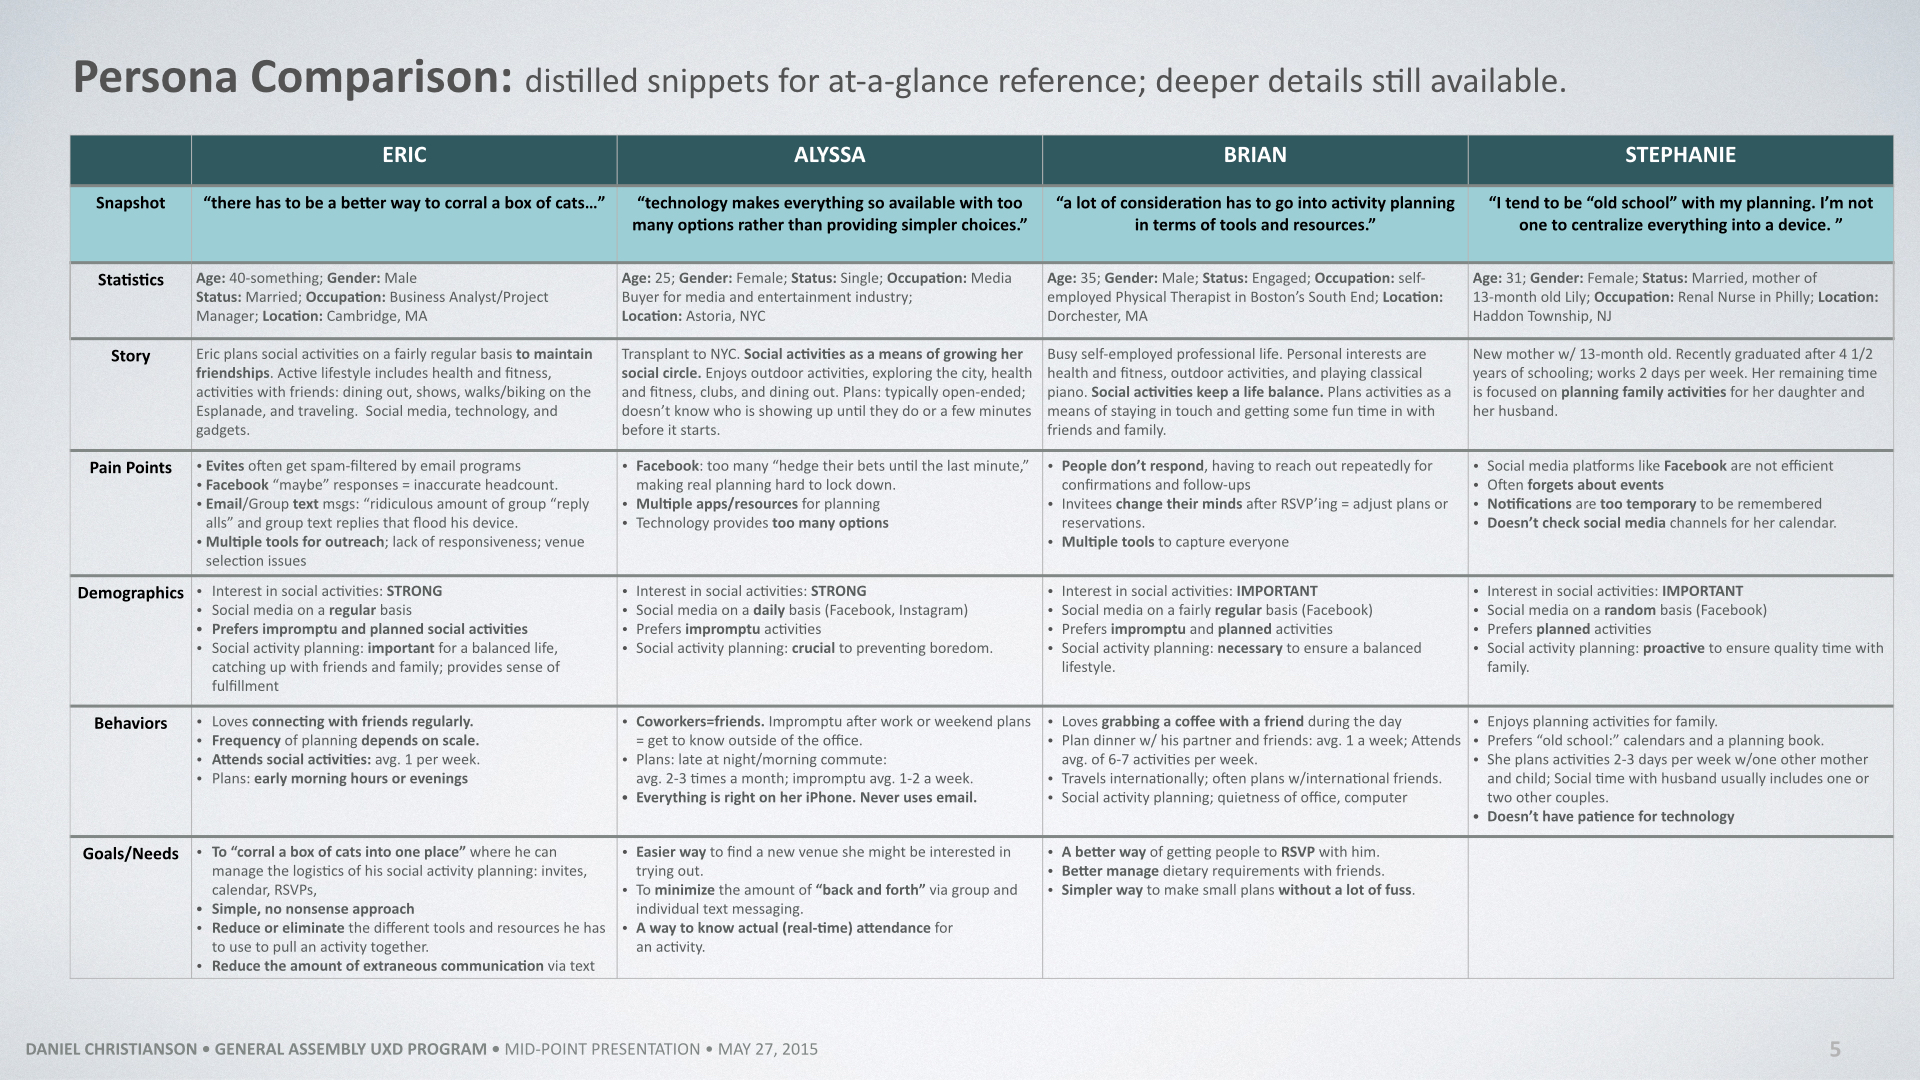 A deeper persona comparison matrix was developed for an at-a-glance reference. This matrix summarizes and highlights key information but is backed by more detailed notes from the actual interviews.